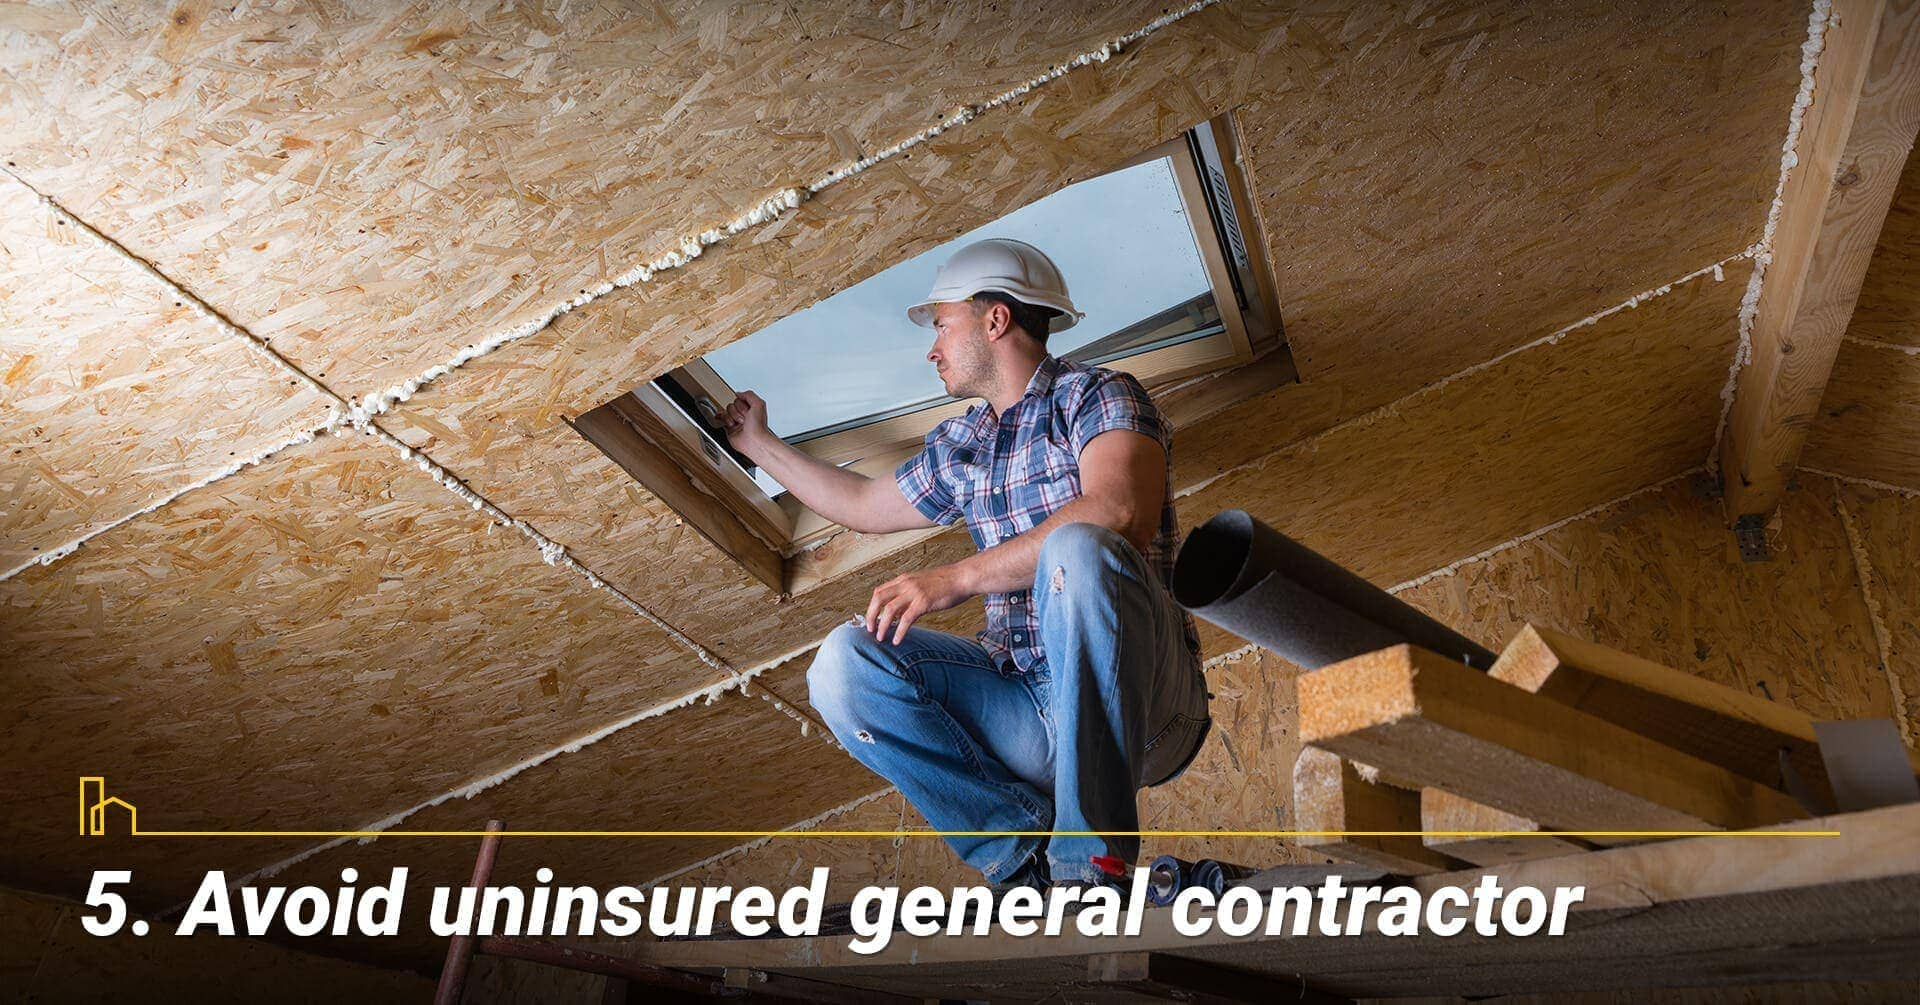 Avoid uninsured general contractor